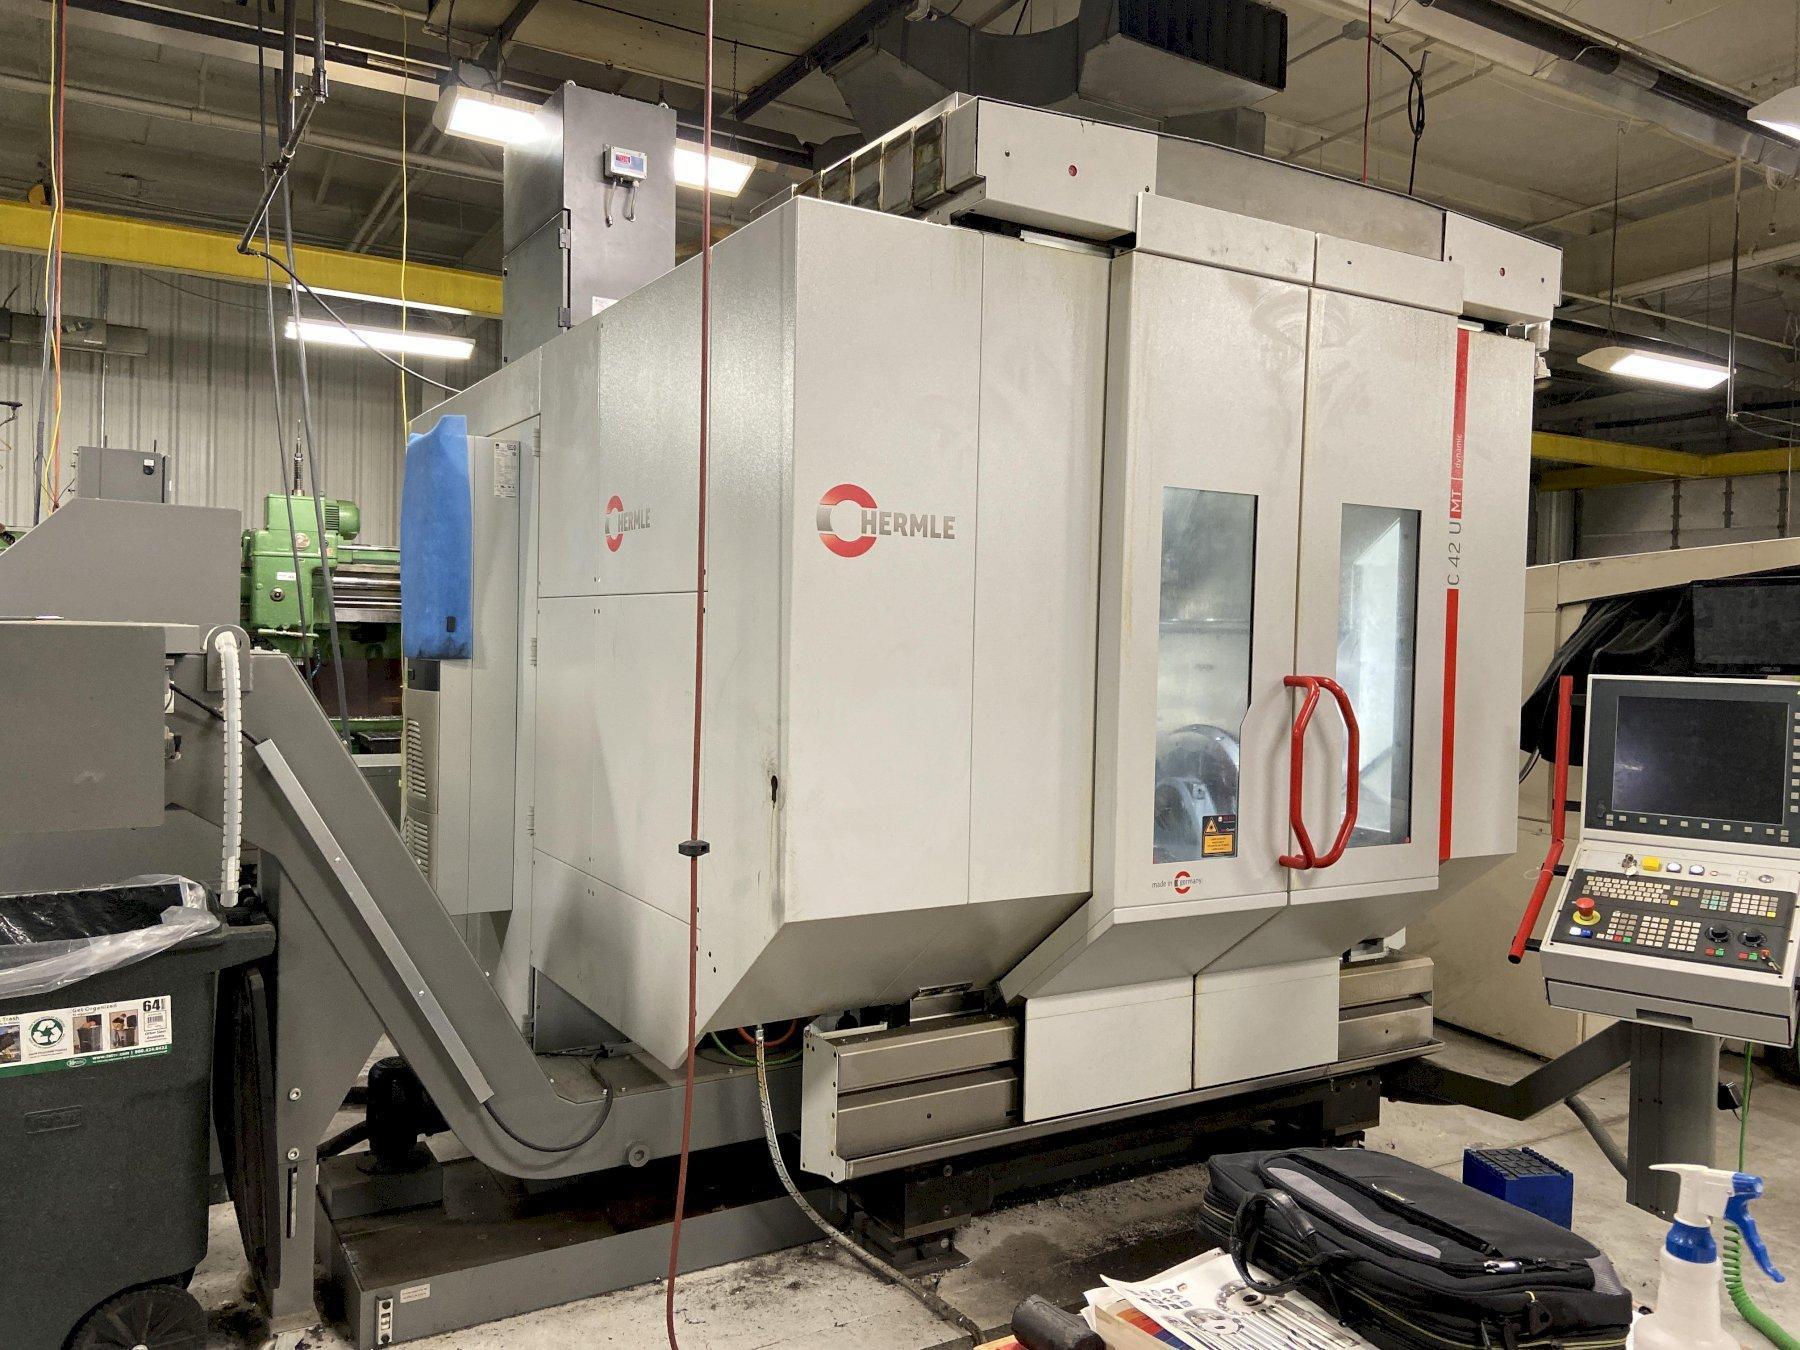 "Hermle C-42U-MT CNC 5-Axis Vertical Machining/Turning Center, Siemens 840D, 29.5"" Dia. Table, 31.5""/31.5""/19.6"" Travels, 18K Spindle, 42 ATC, HSK T63 Taper, Many Options, R&D Facility, 2013"